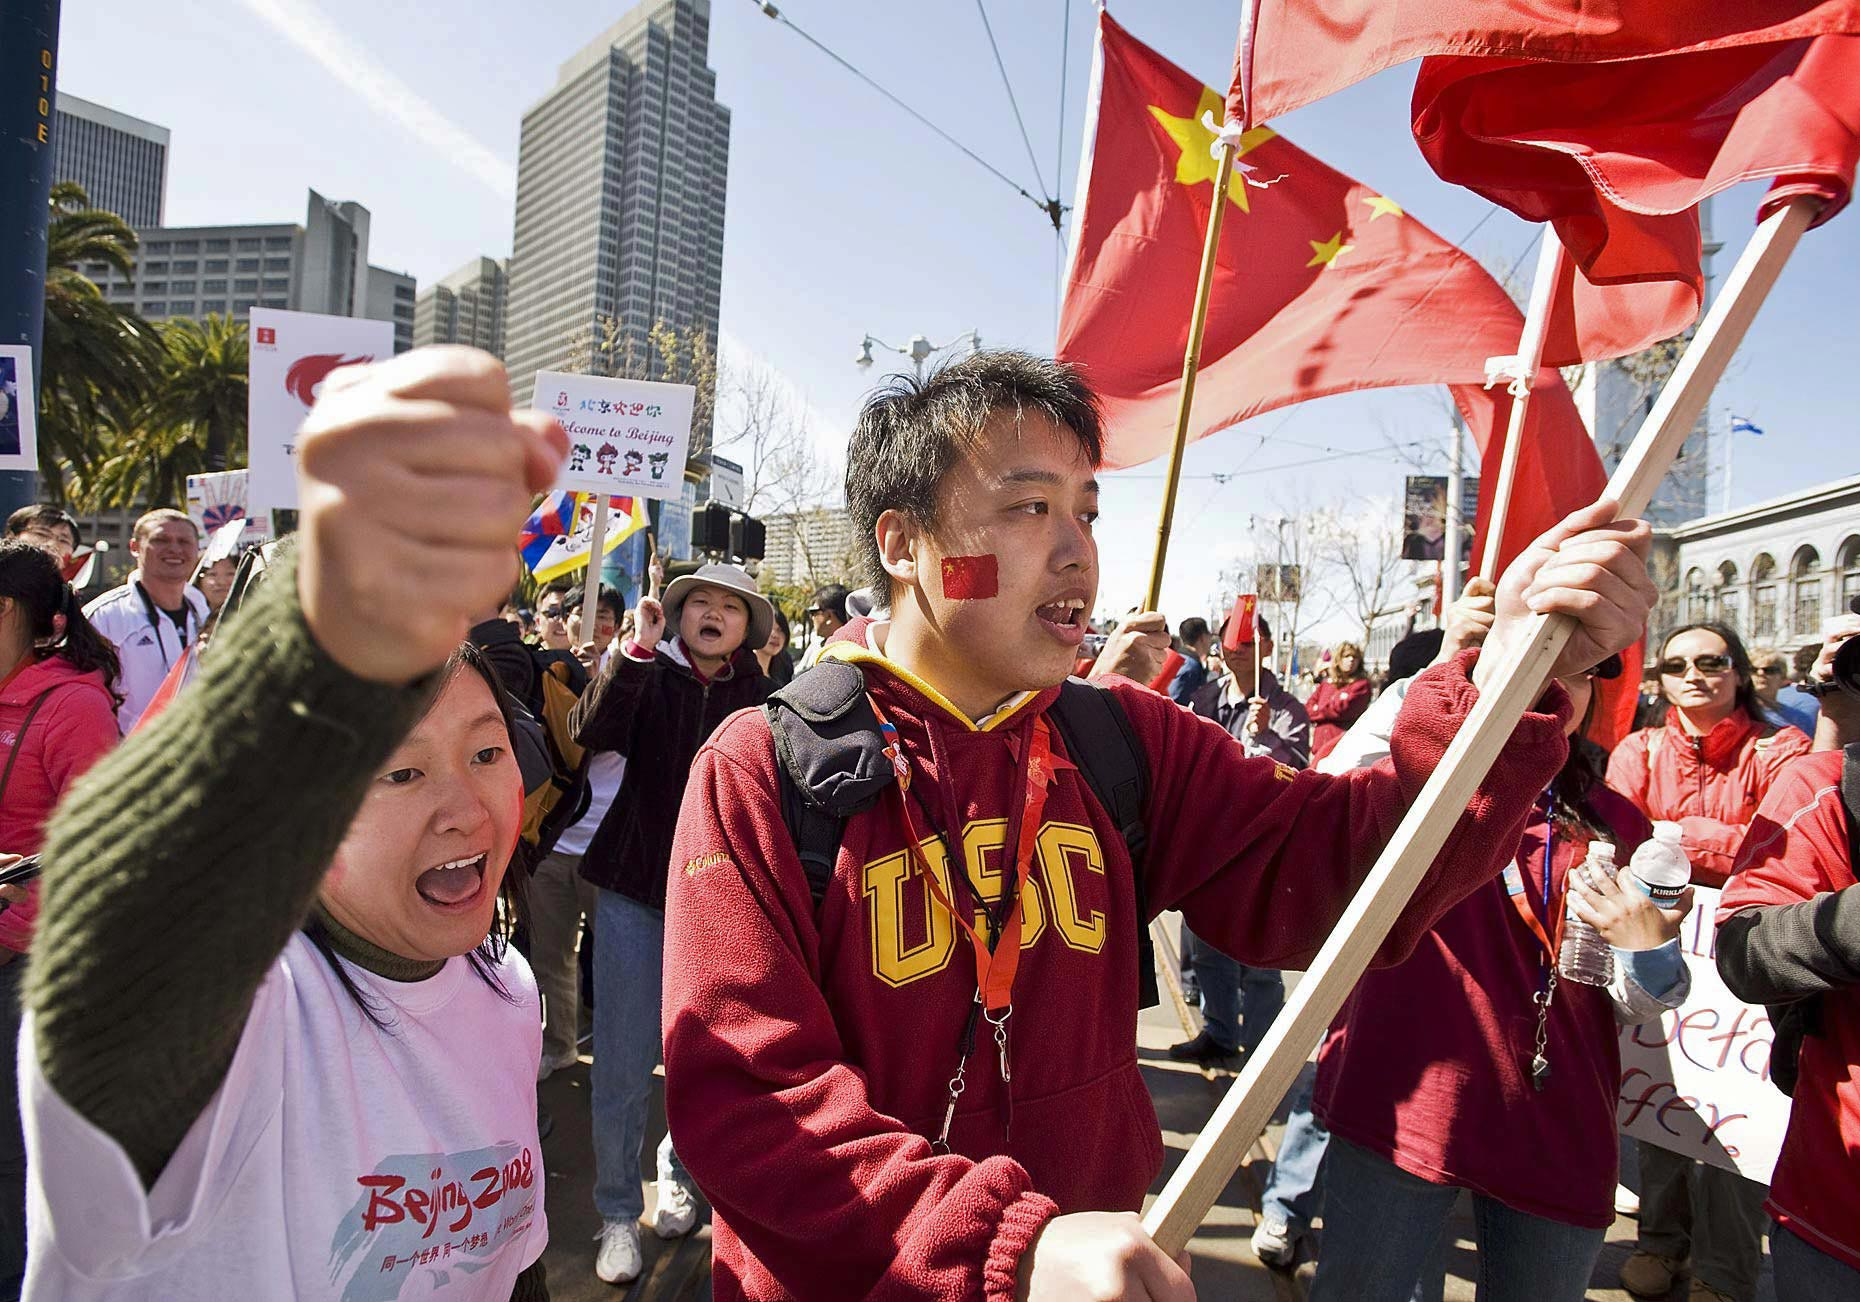 NEW_PhotoReporters_San-Francisco-Olympic-Torch-Protest-China-Tibet_003